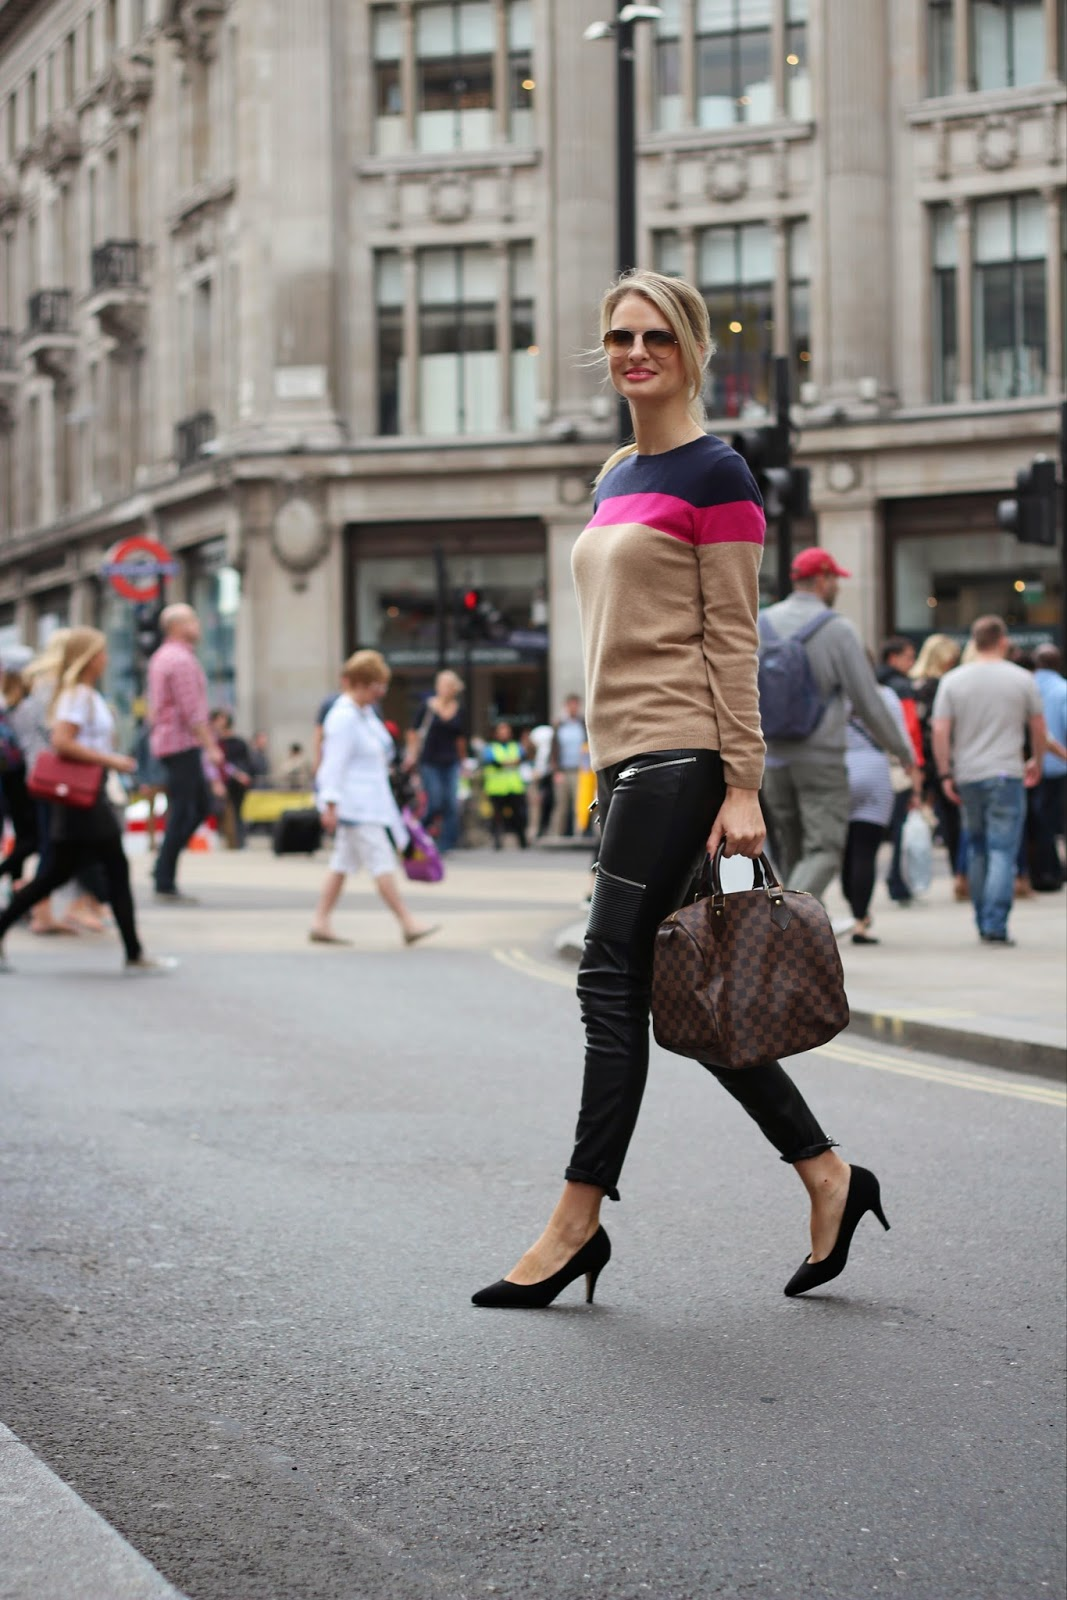 oxford street, oxford circus, street style, london street style, london blogger, biker pants, biker leather pants, zara biker pants, louis vuitton bag, louis vuitton speedy bag, cashmere jumper, boden, boden jumper, boden cashmere jumper, kurt geiger heels,chrissabella,  black heels, daniel wellington watch, blonde blogger